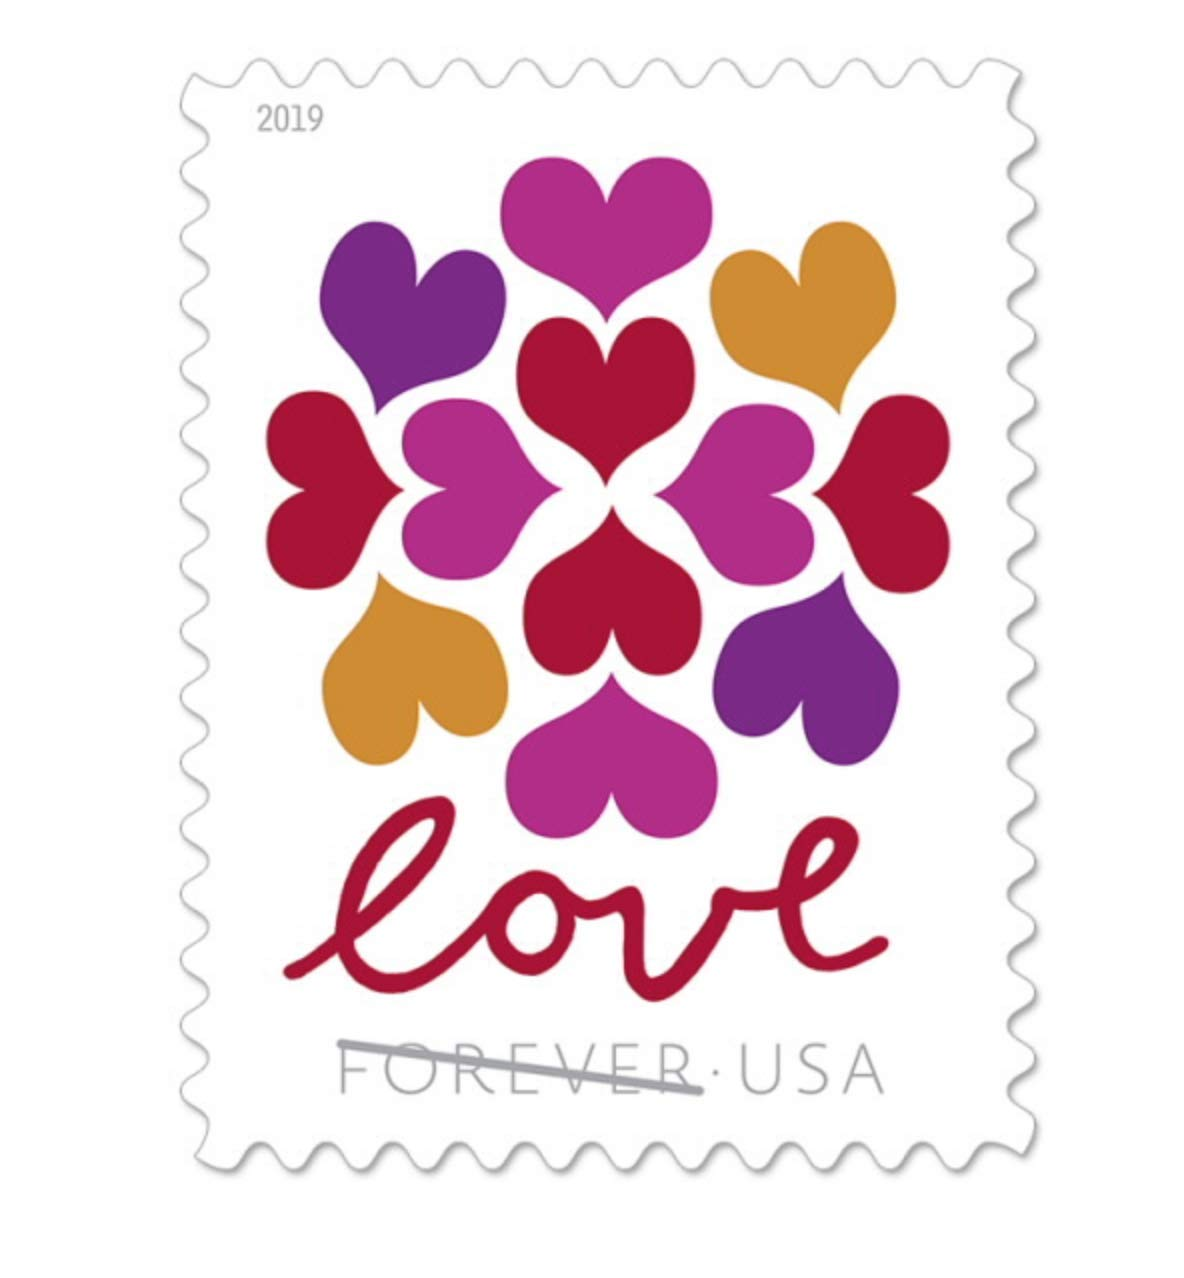 USPS Hearts Blossom Love Forever Stamps 2019 (1 Sheet of 20 Stamps)